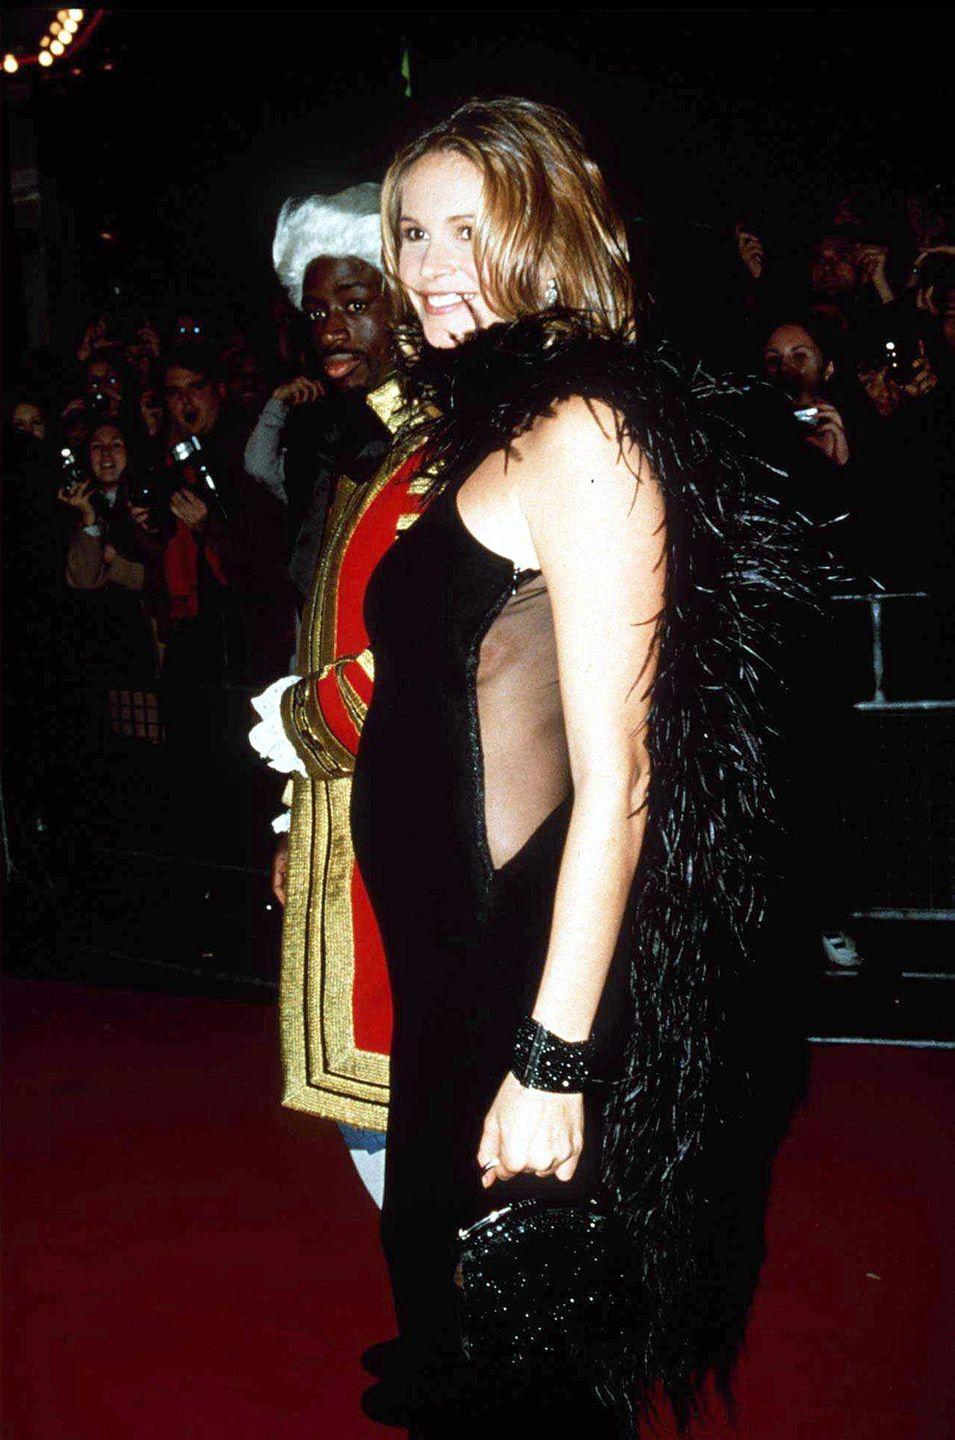 <p>Pregnant bodies were celebrated in the '90s like never before. With so many high profile celeb moms-to-be, designers took note and the maternity fashion market boomed accordingly. Models, like Elle Macpherson here, eschewed baggy, oversized garb for more slim-fitting silhouettes that highlighted their changing shape.</p>